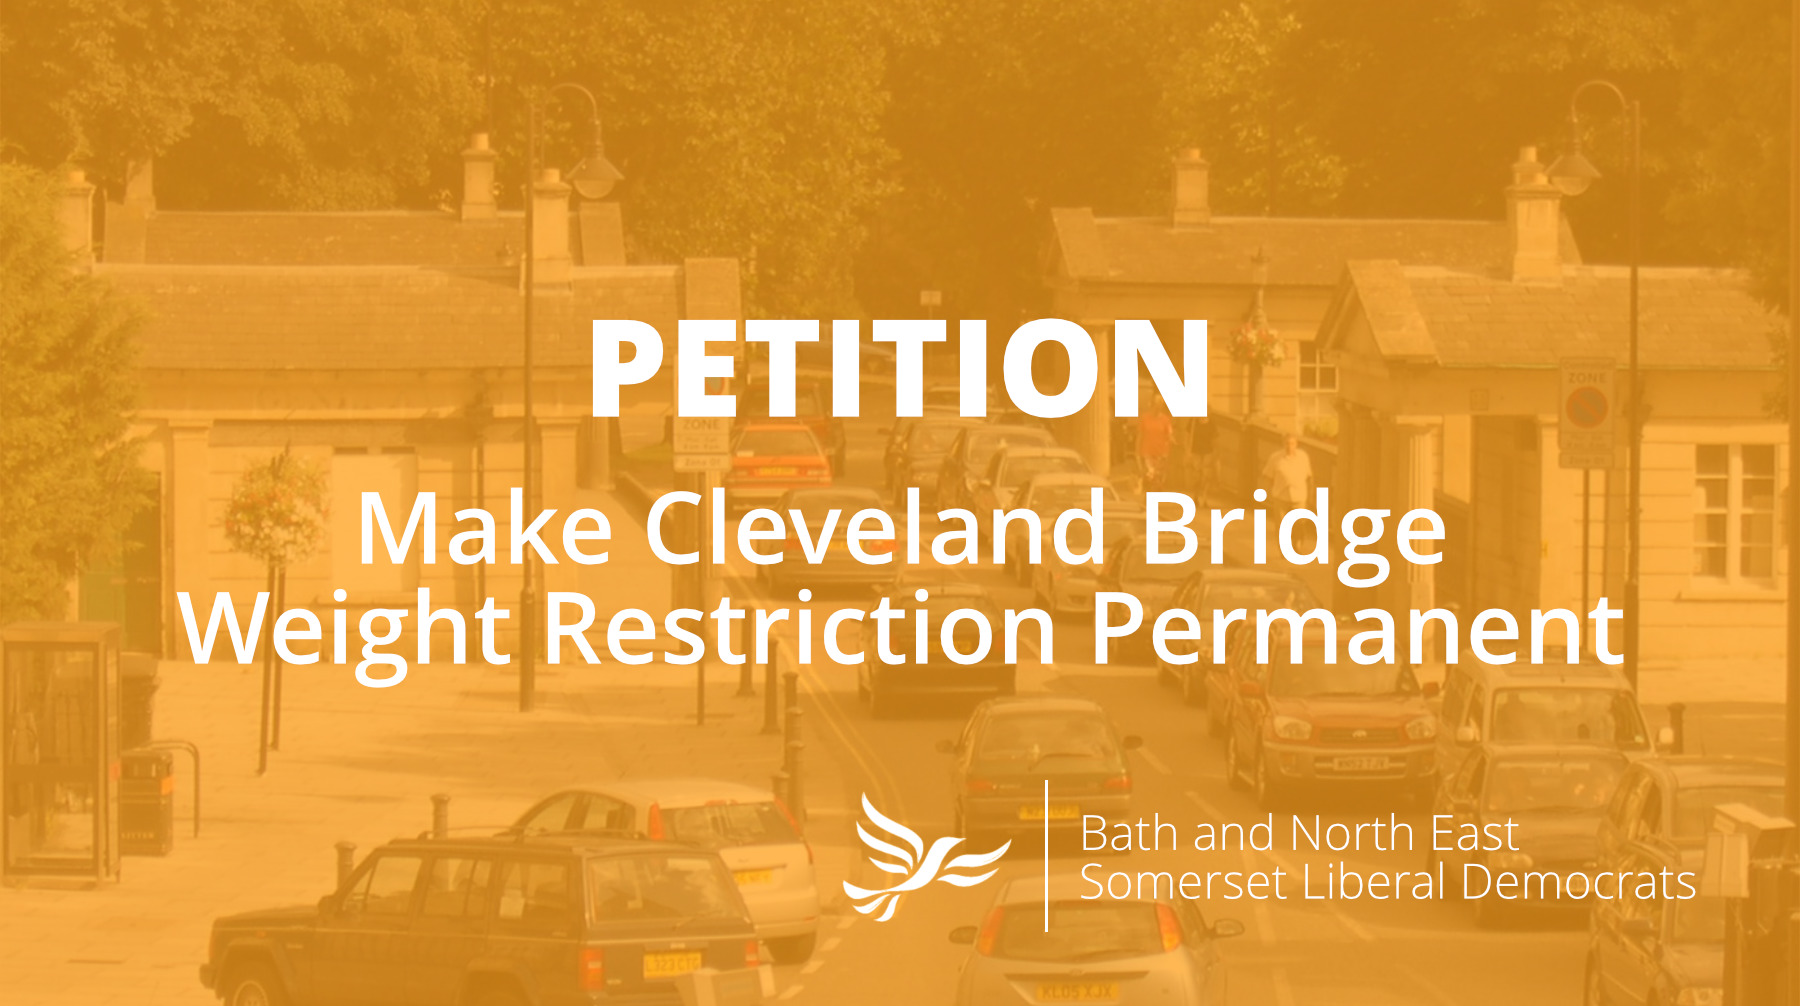 Make Cleveland Bridge Weight Restriction Permanent